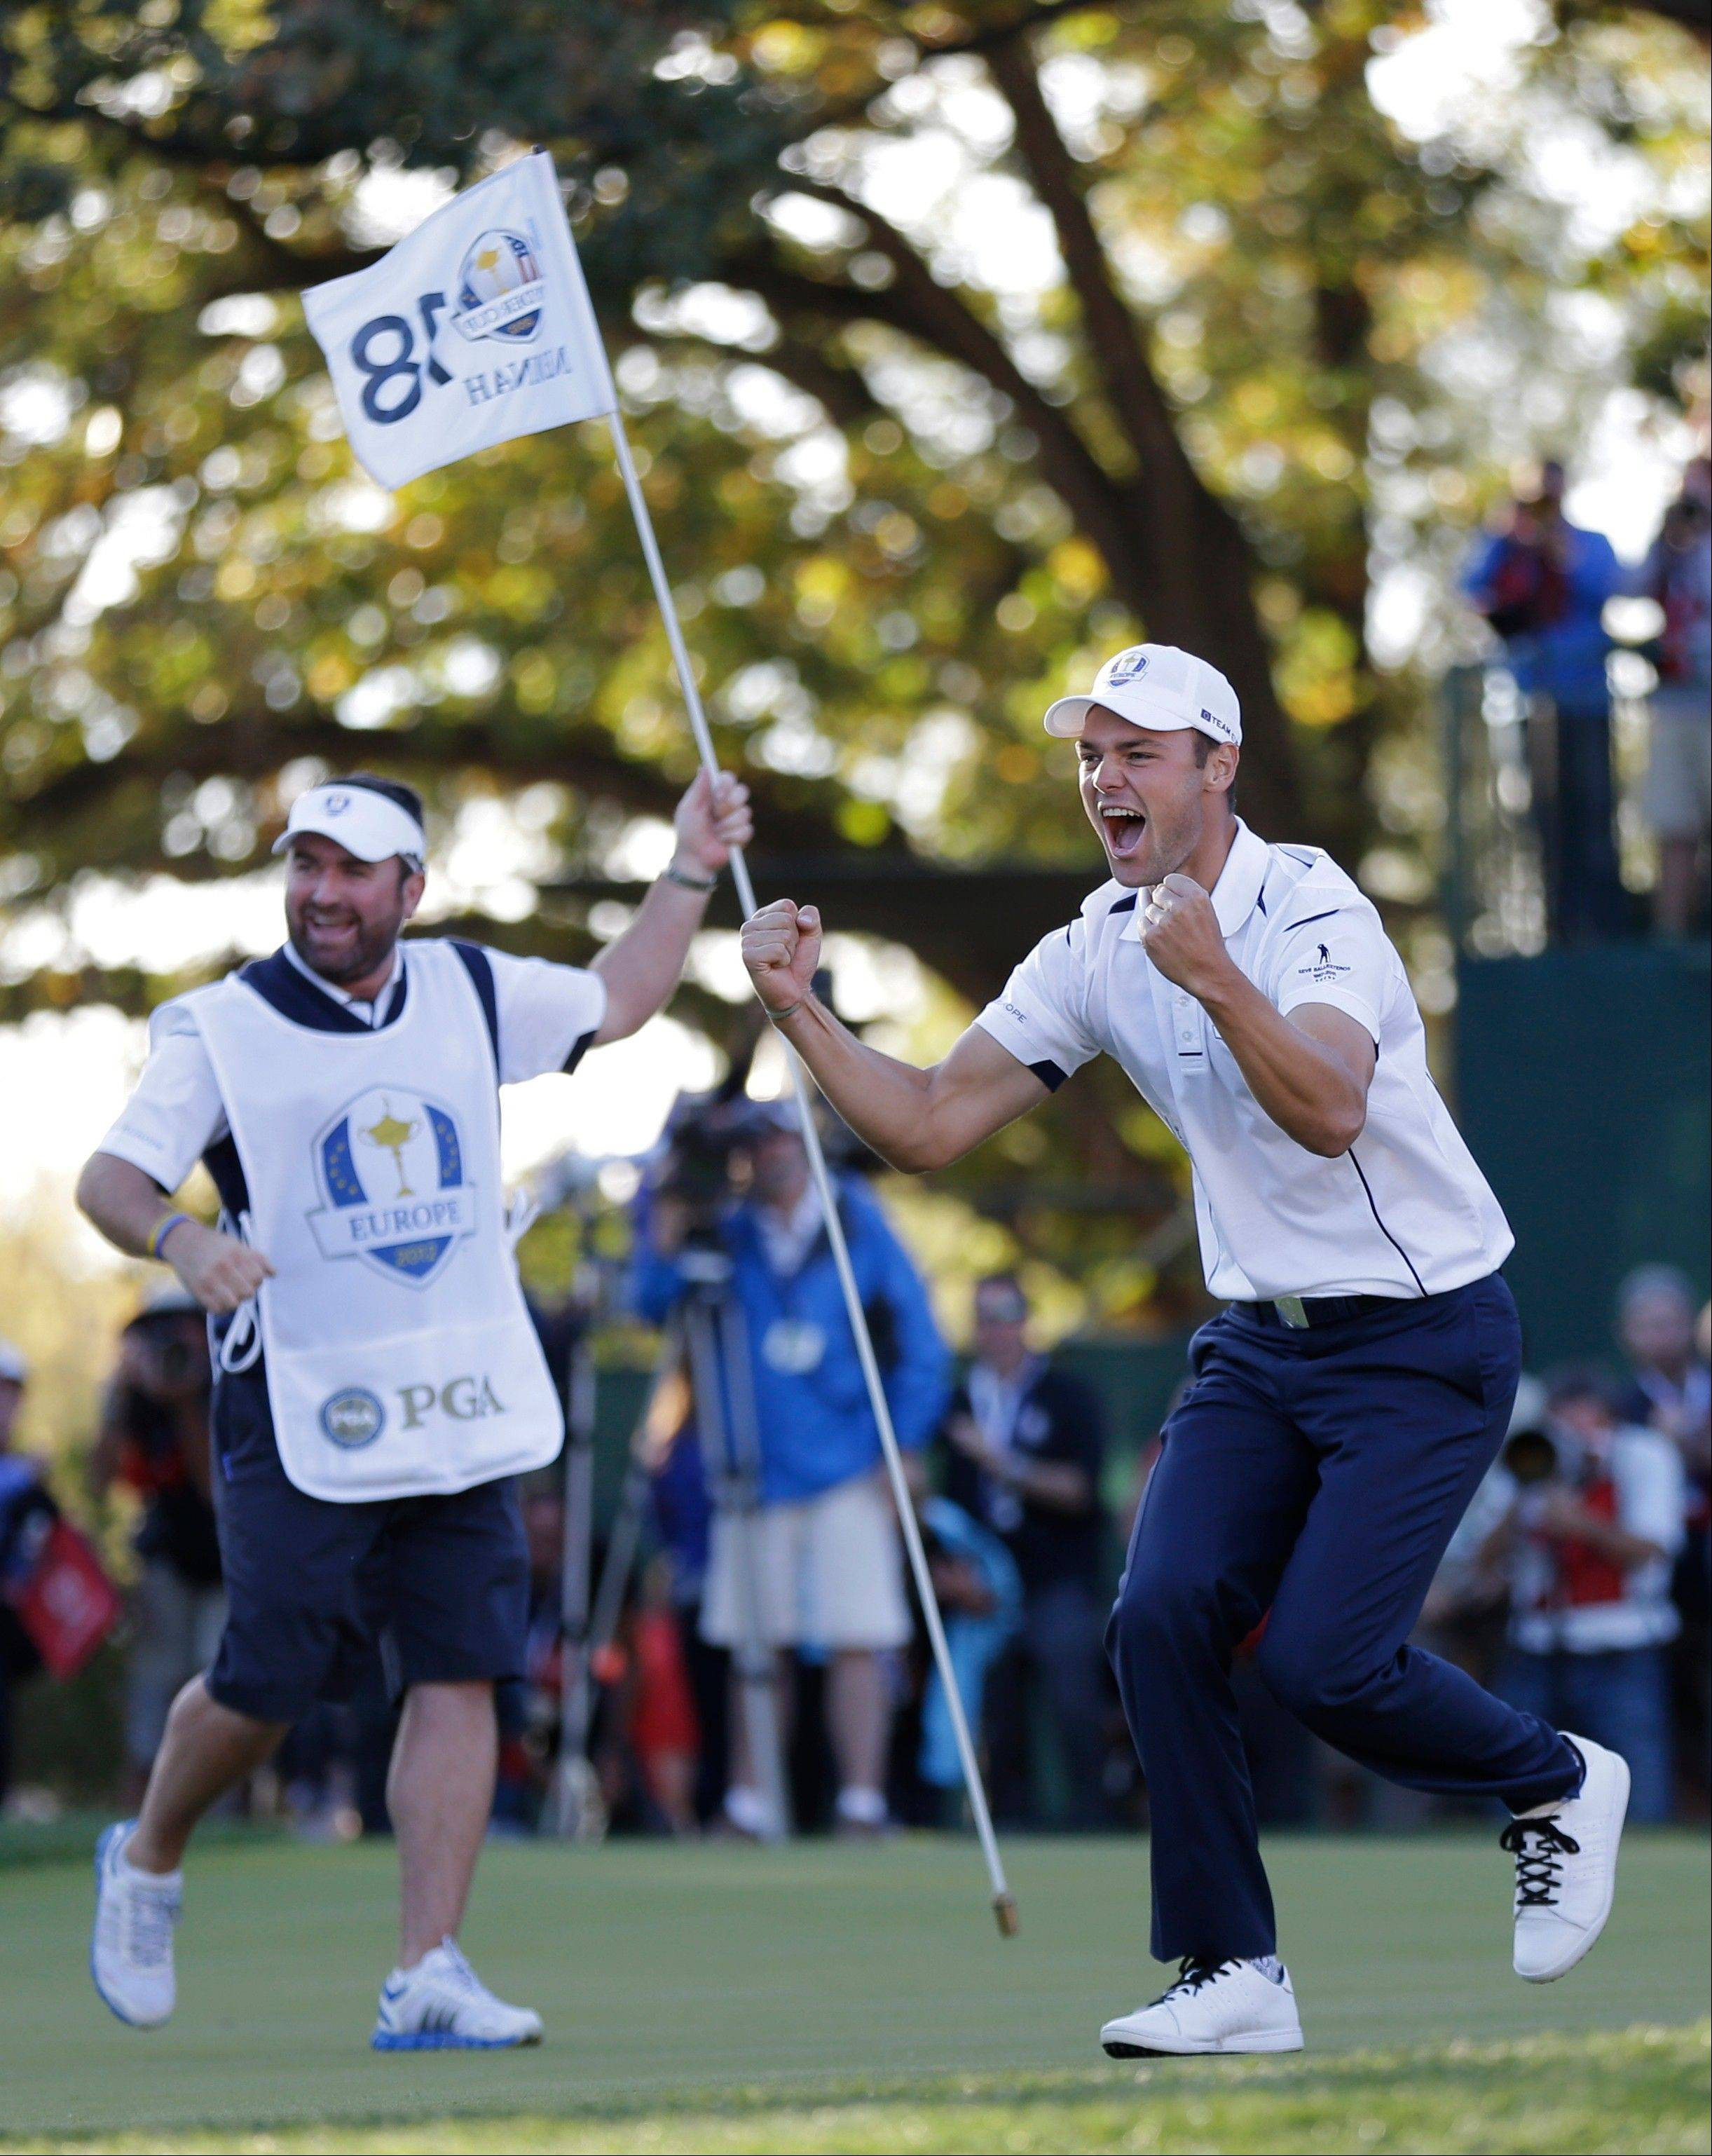 Europe�s Martin Kaymer celebrating his Ryder Cup-winning putt Sunday was just one of the many memories for a special weekend at Medinah Country Club.